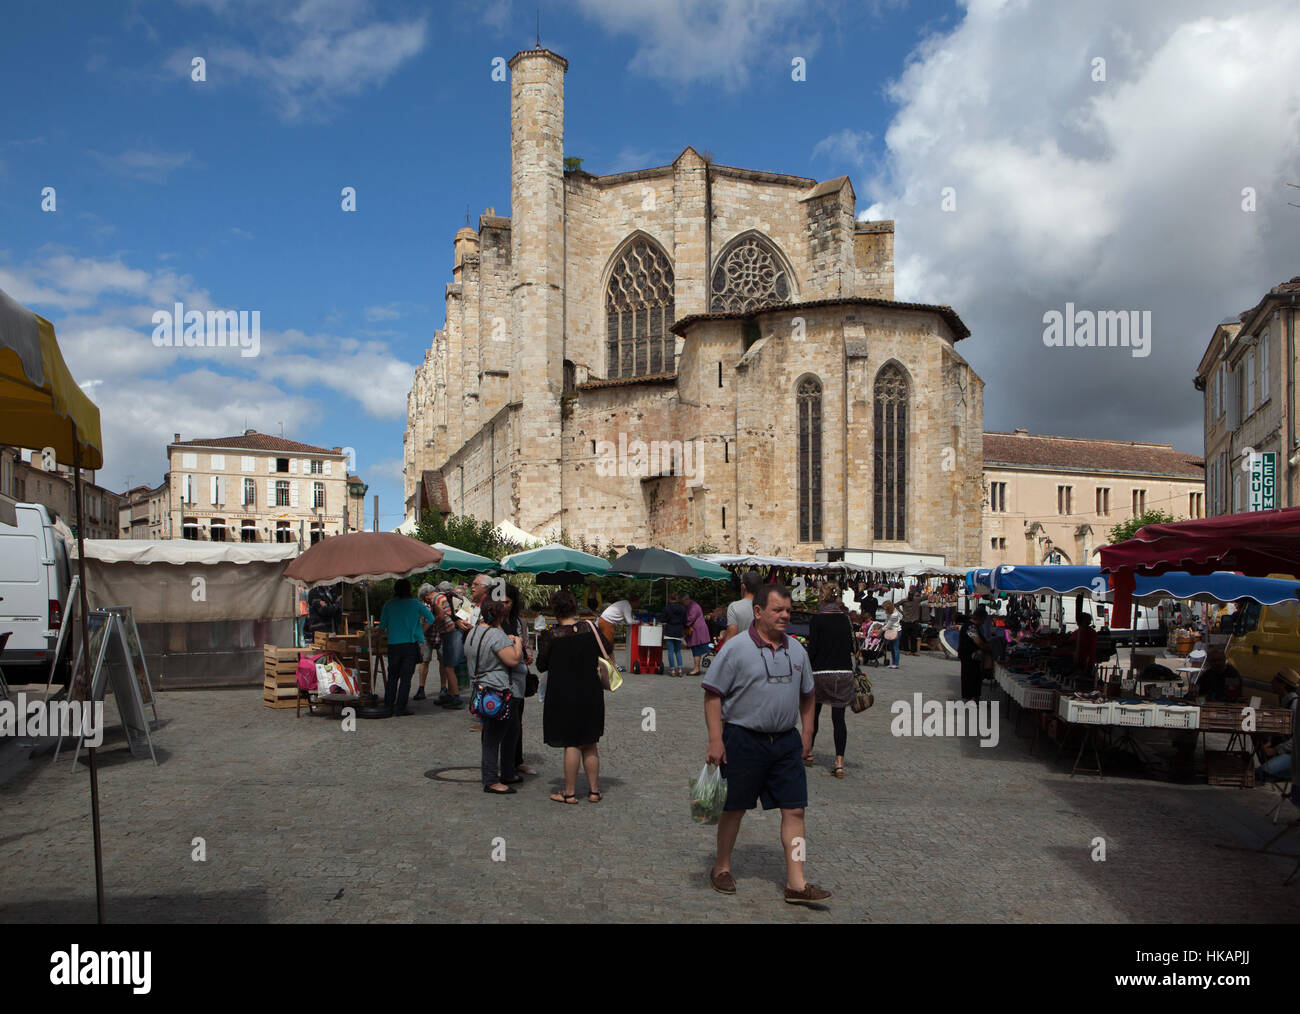 Sunday market in front of the Condom Cathedral (Cathedrale Saint-Pierre de Condom) in Condom, Gers, France. - Stock Image